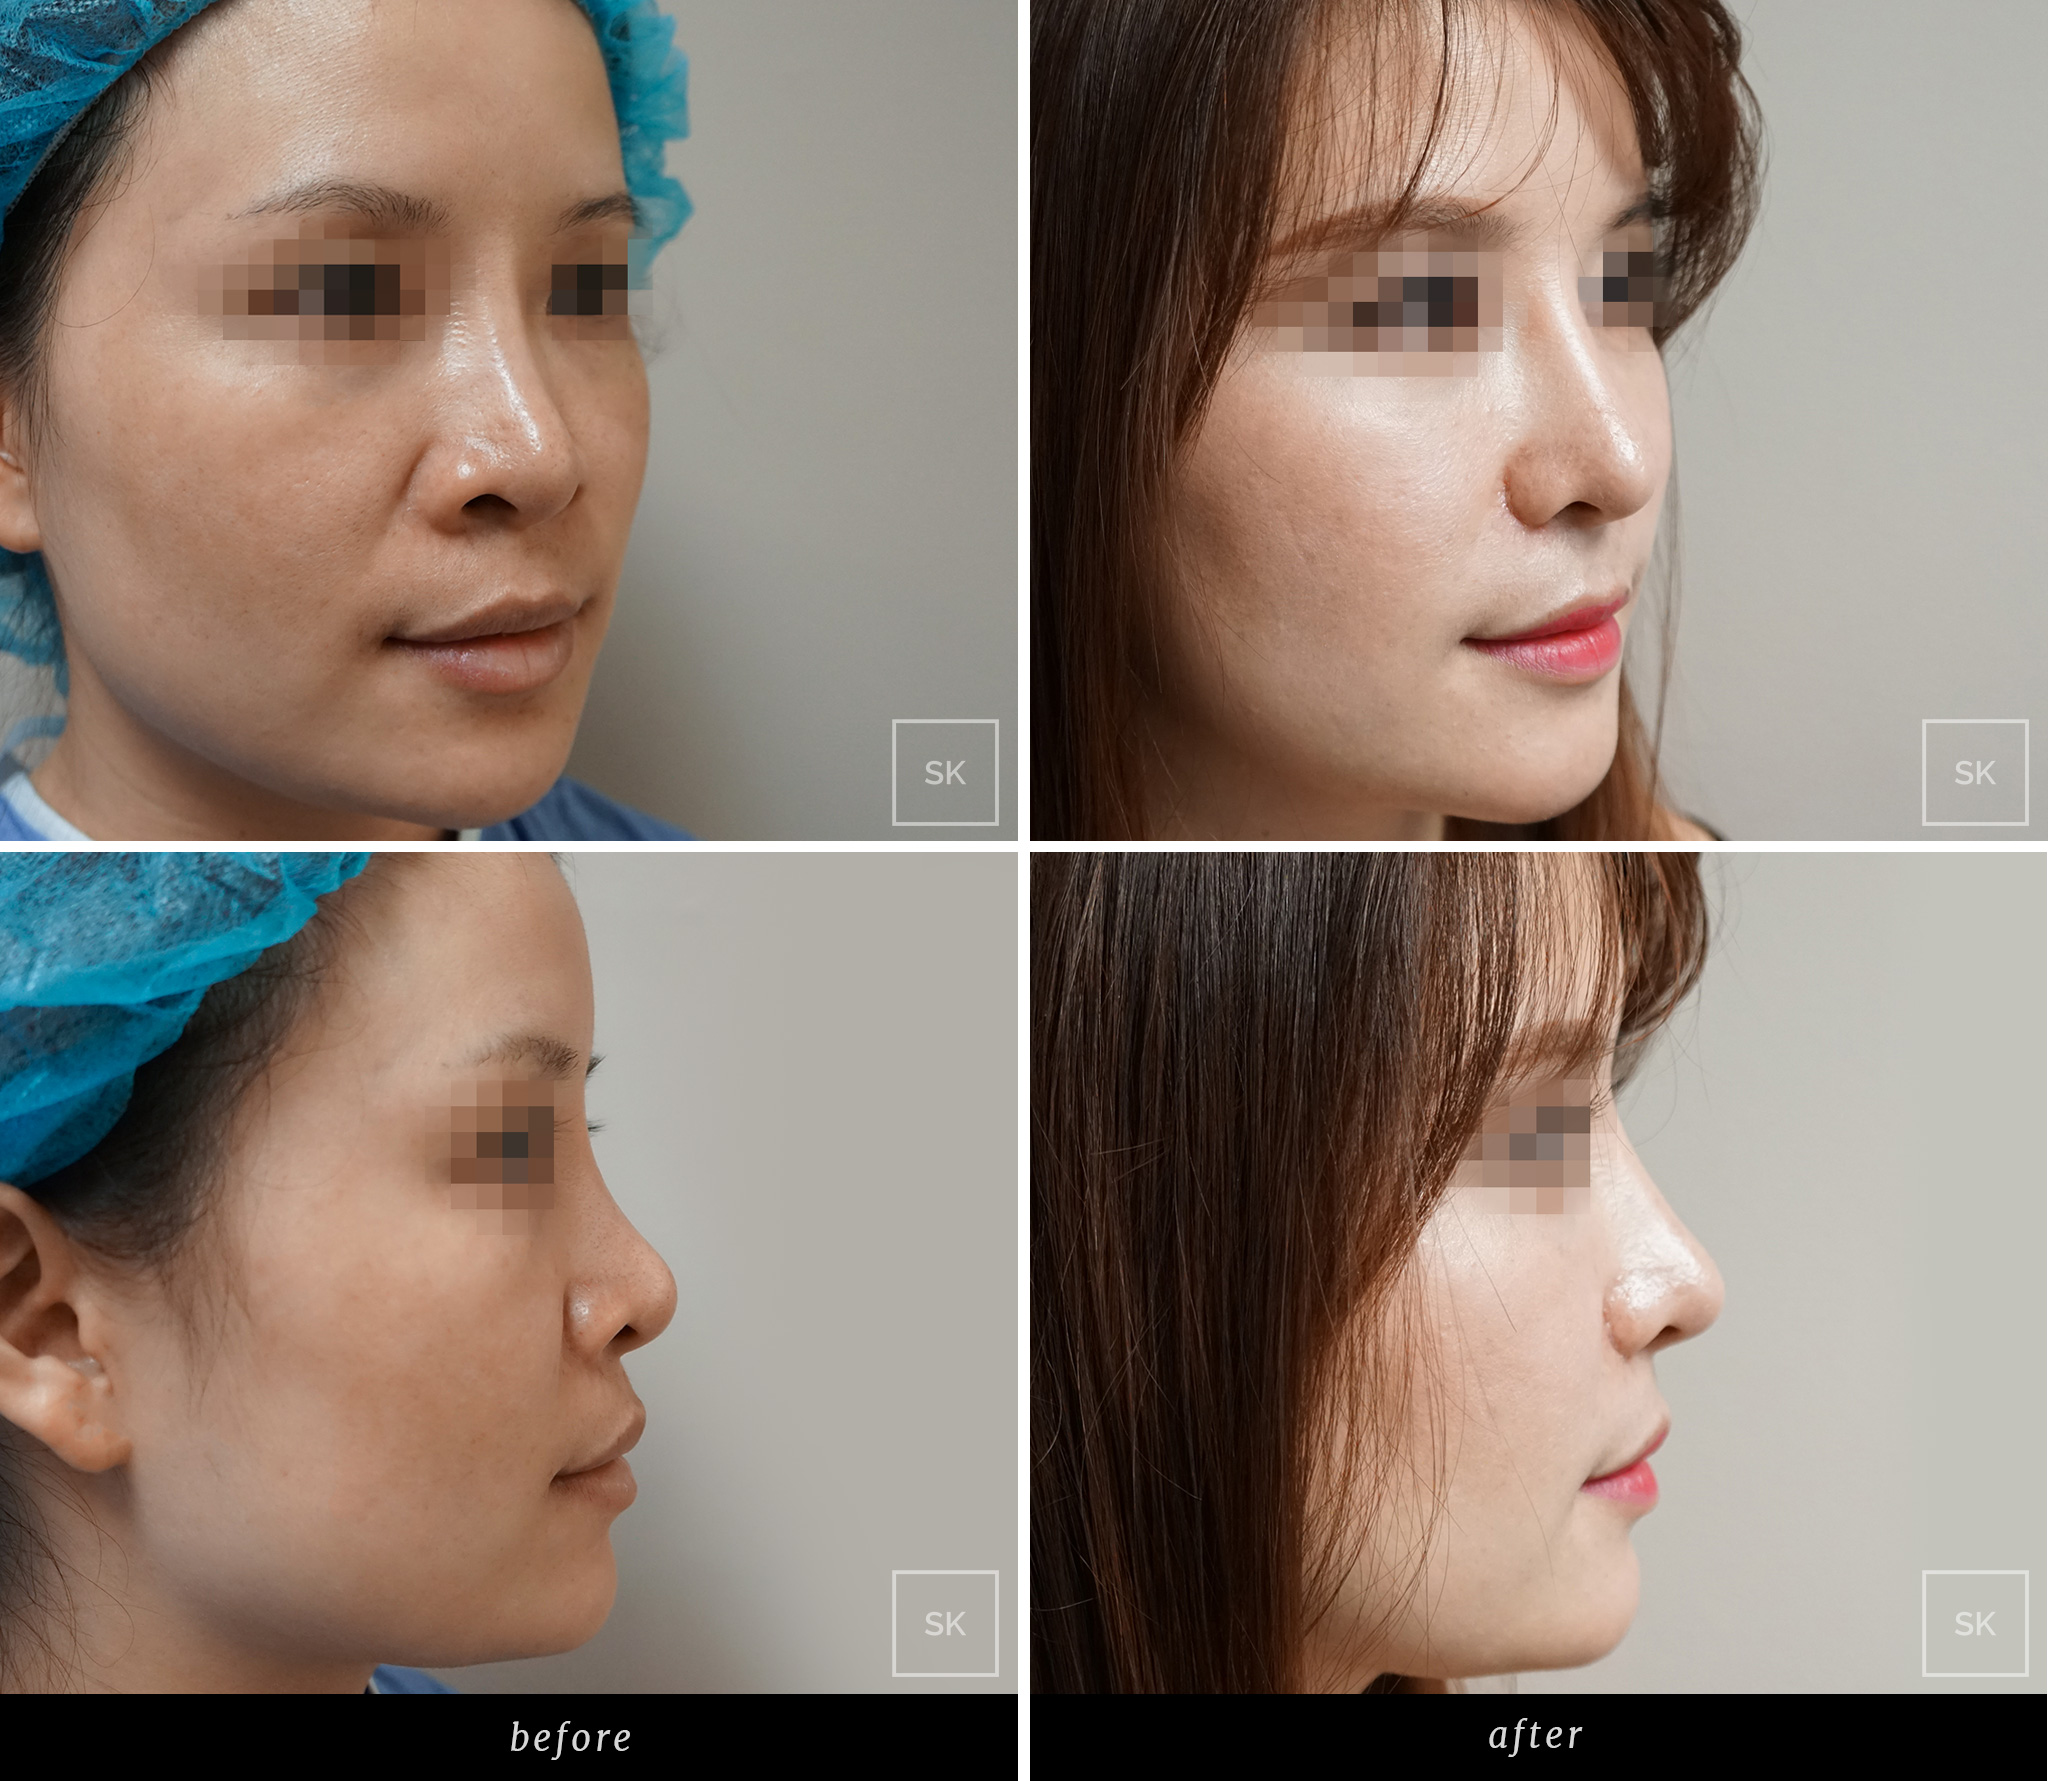 Before and After Nose Surgery Photos - SK Plastic Surgery